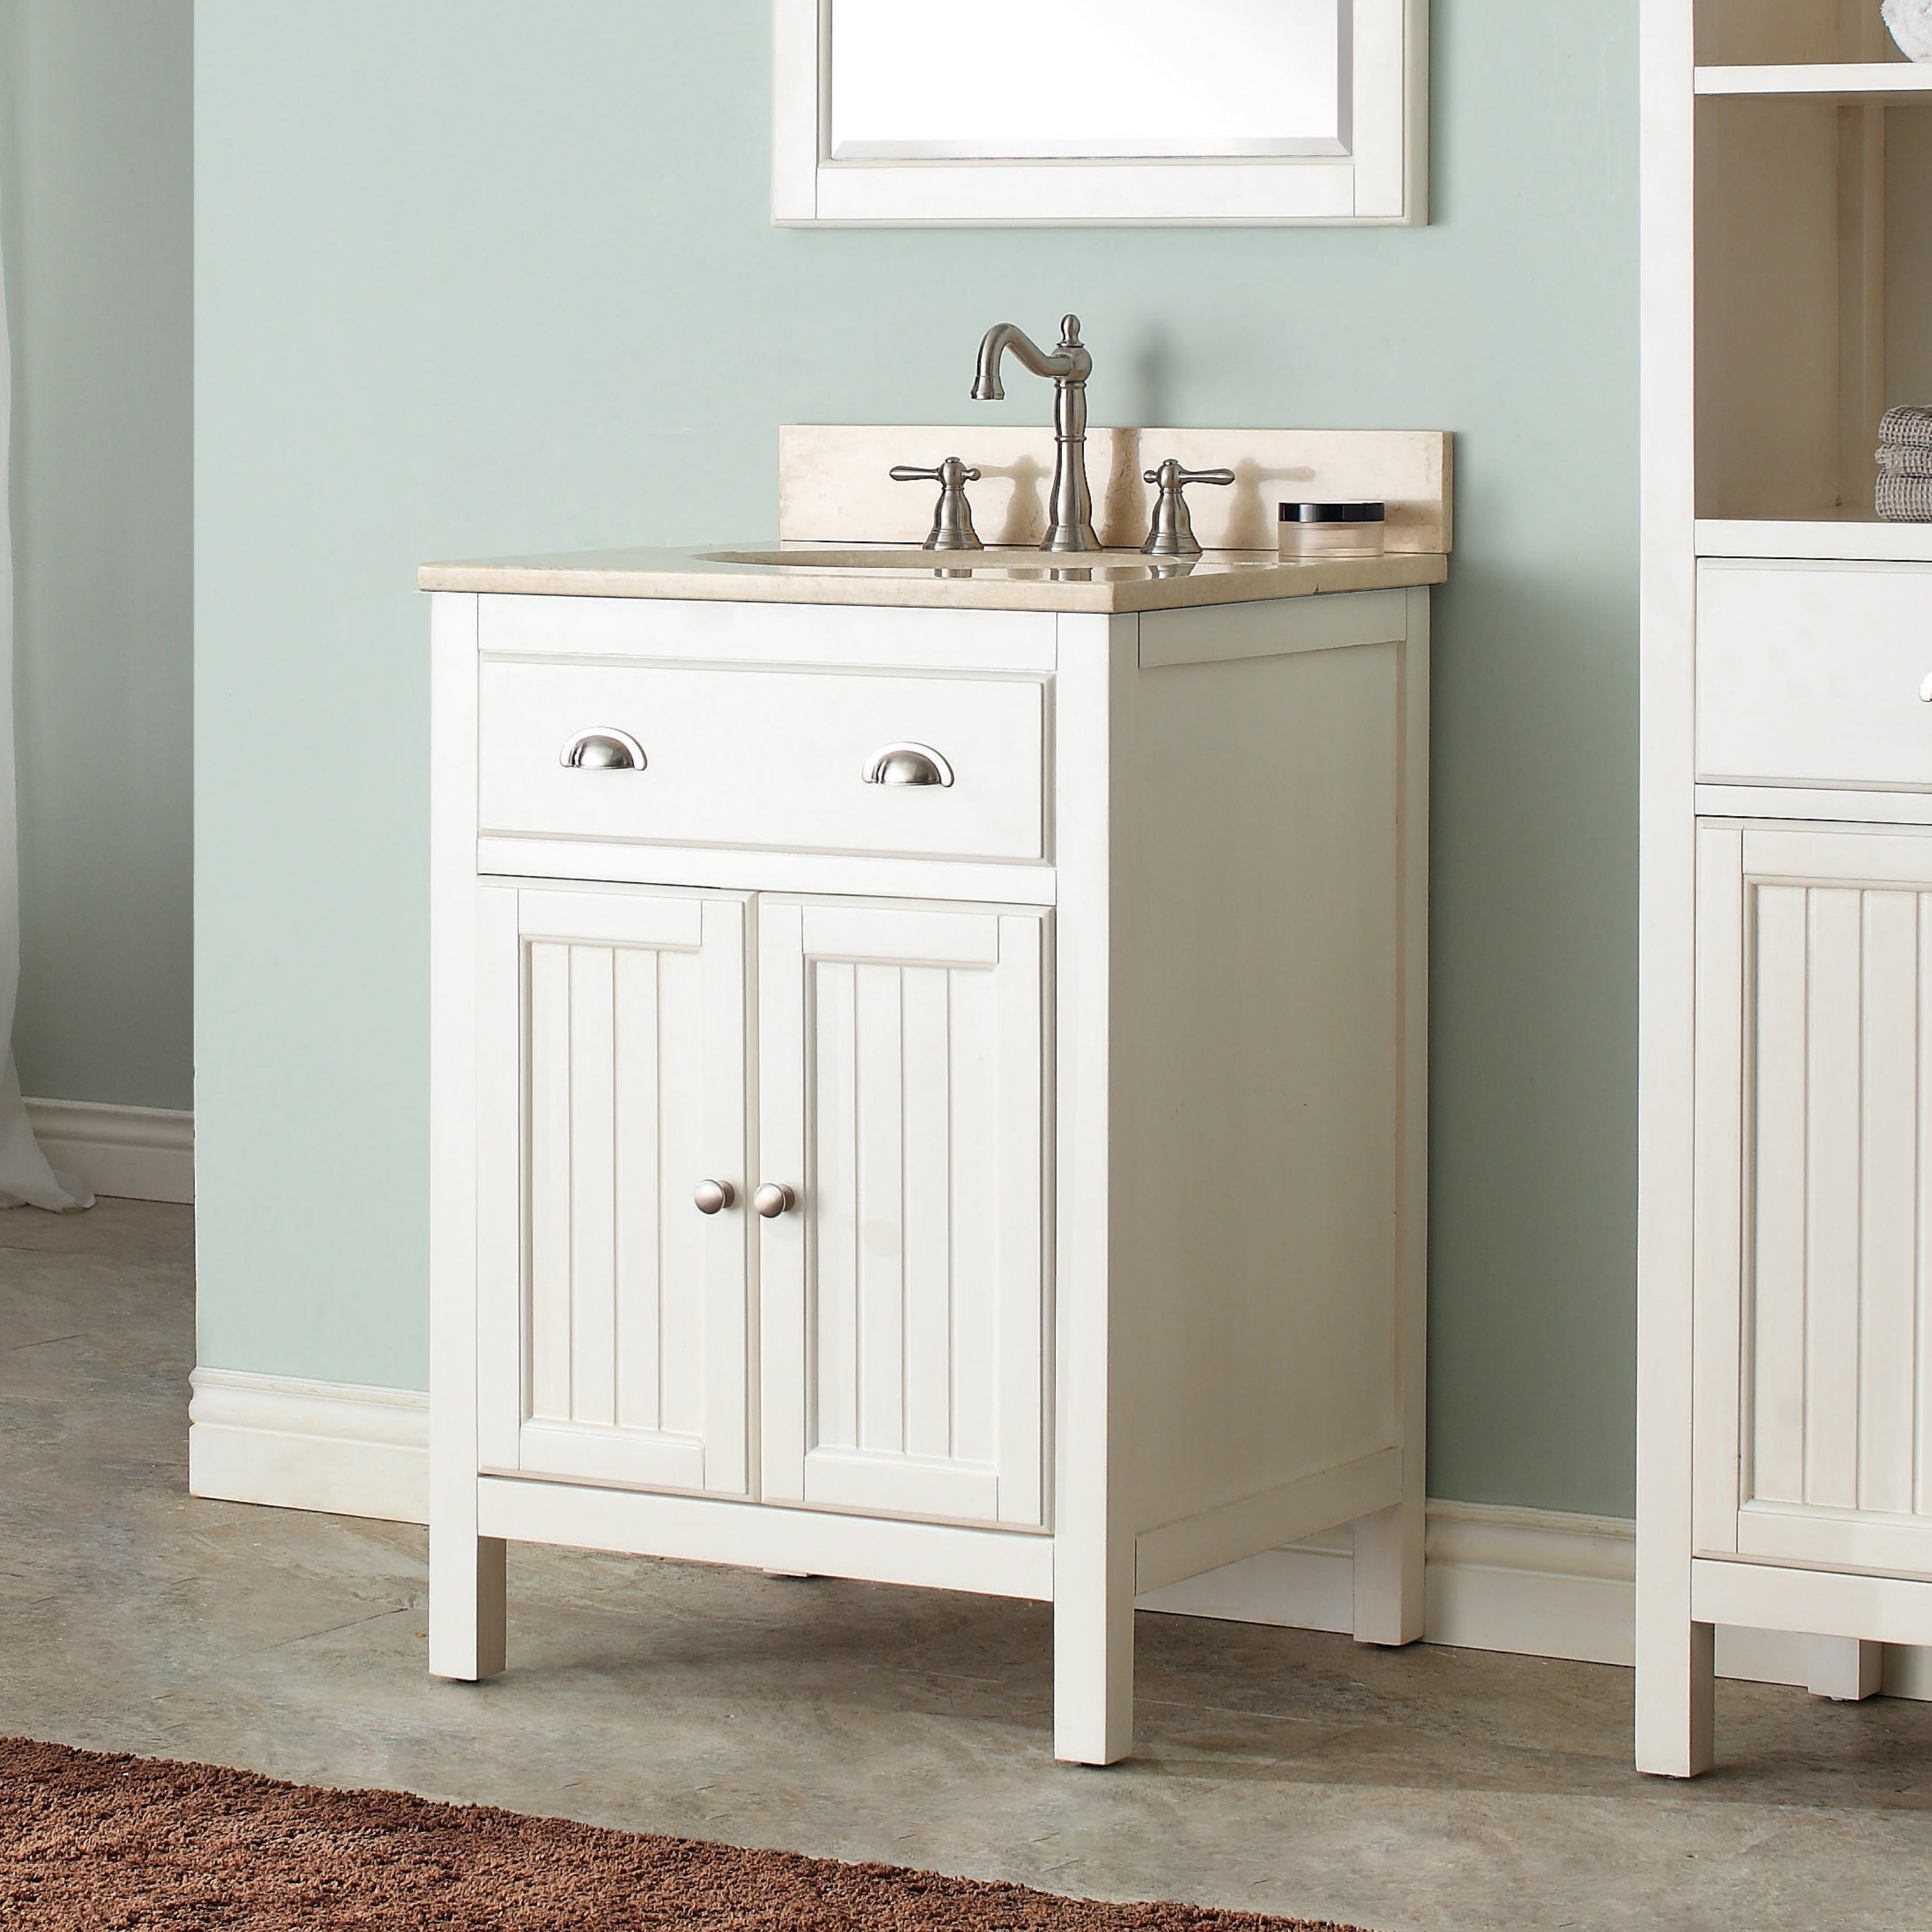 Avanity Hamilton French White 24 Inch Vanity Combo With Top And Sink Overstock 9378840 Carrara White Marble